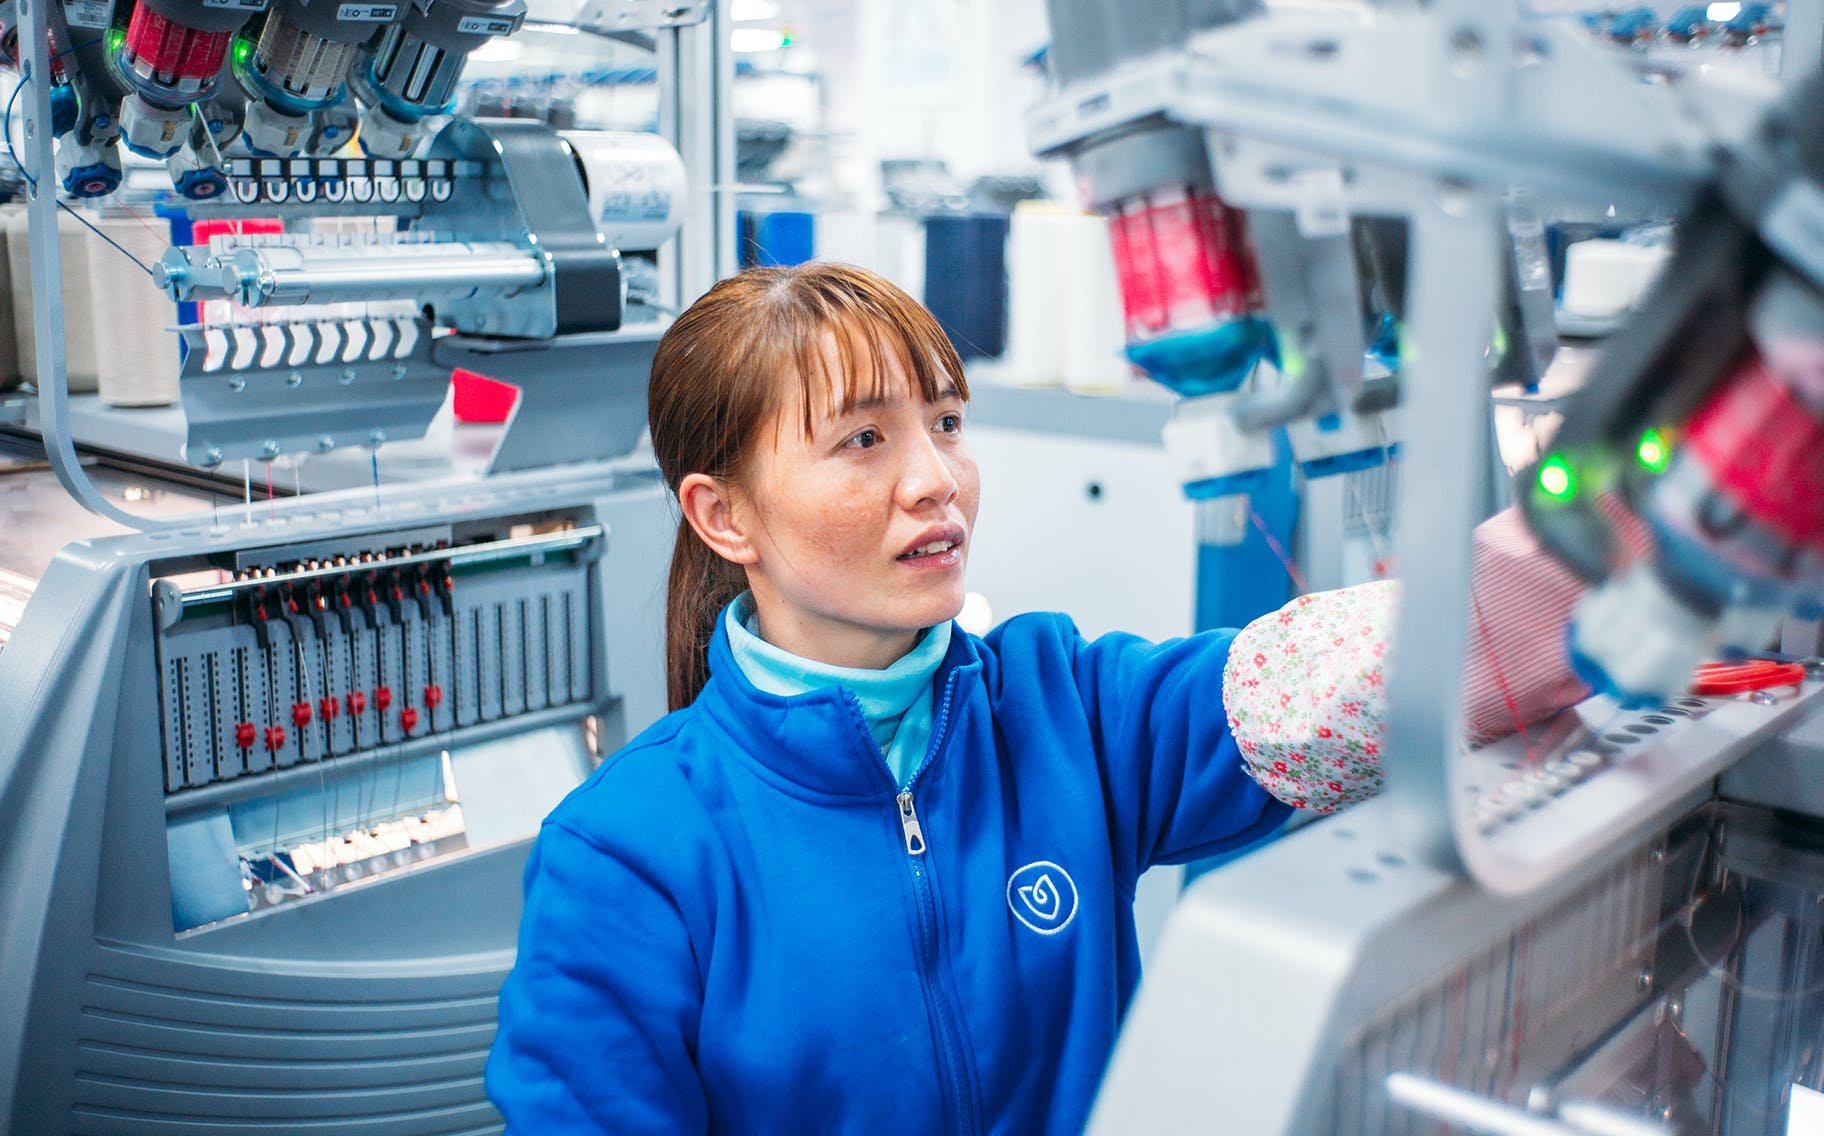 Image of China employee working and smiling in the workshop.